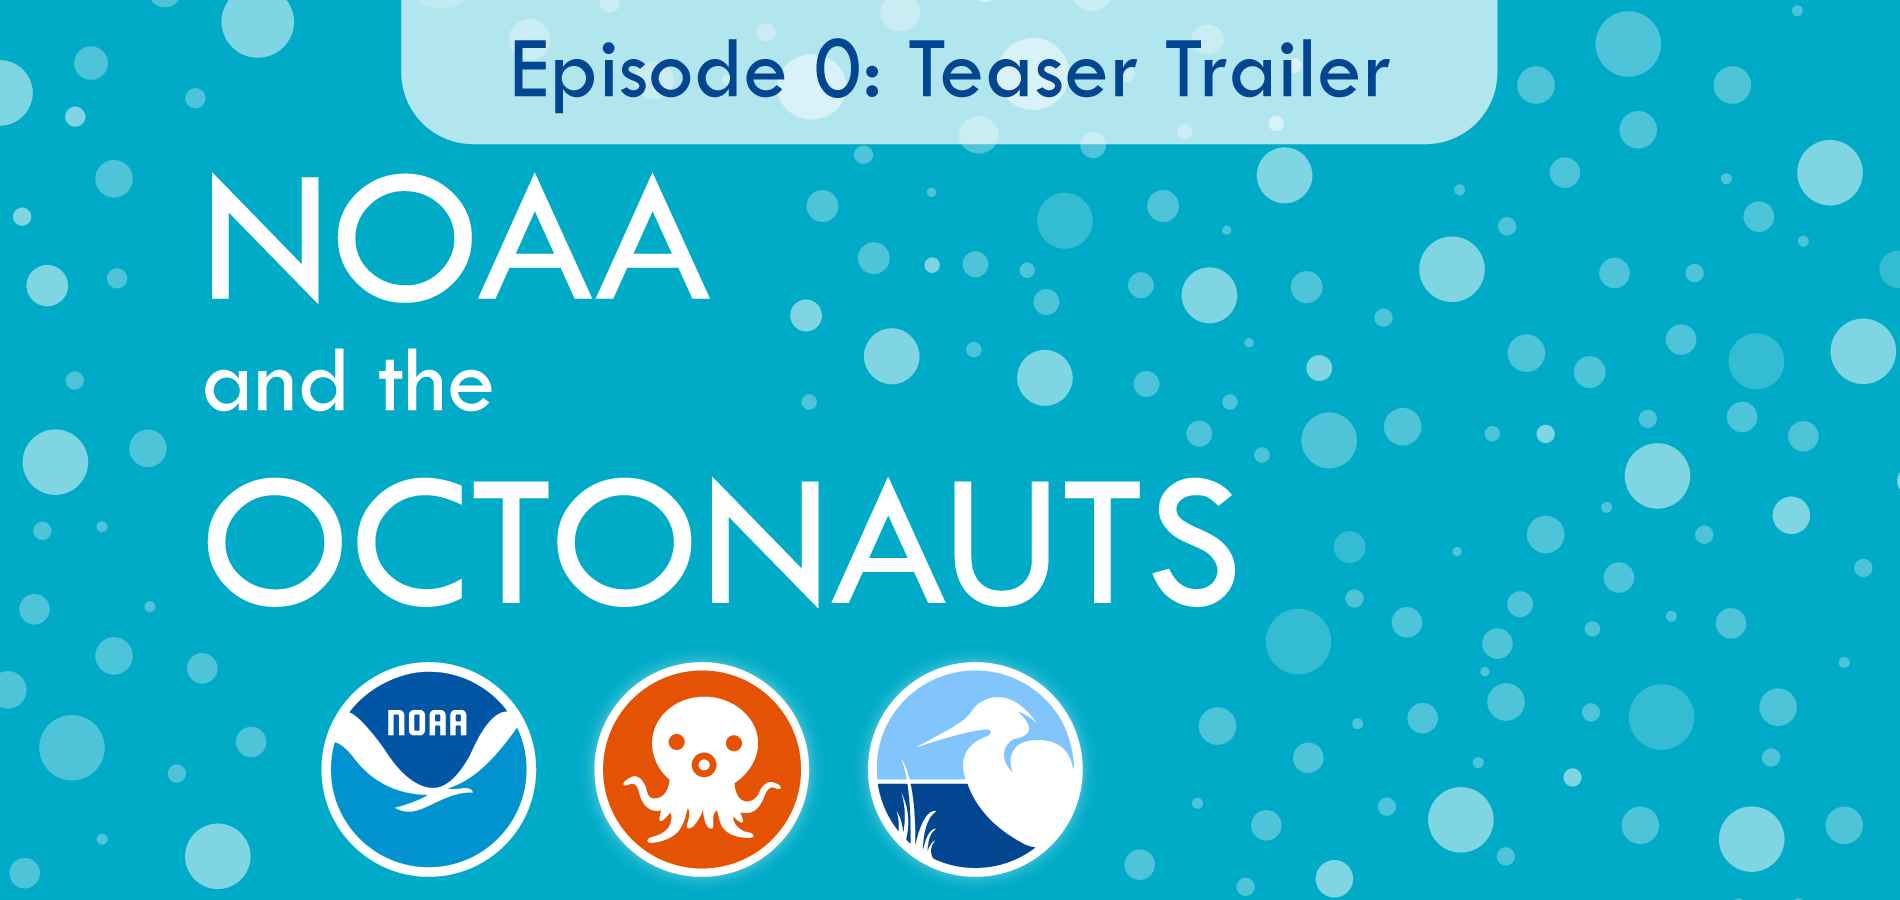 """Introducing """"NOAA and the Octonauts,"""" a new podcast from NOAA's Office of Education and the Coastal Ecosystem Learning Center (CELC) Network. Hear about the inspiration behind the show, and get a sneak peek of the episodes to come."""